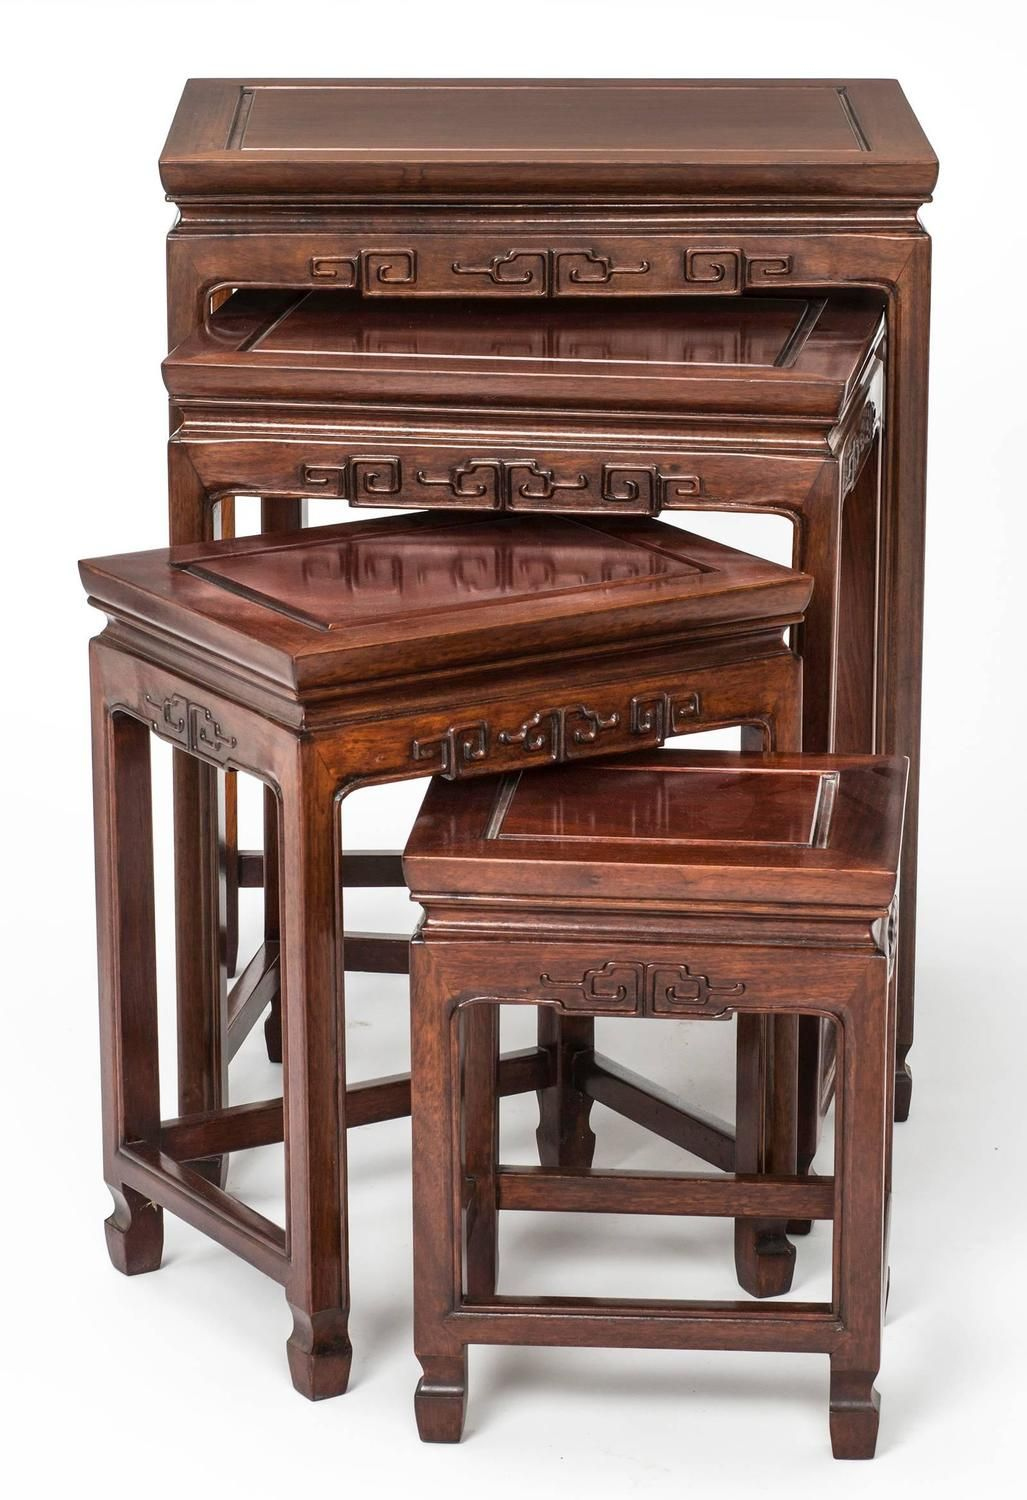 Rosewood Chinese Nesting Tables | From a unique collection of antique and modern…